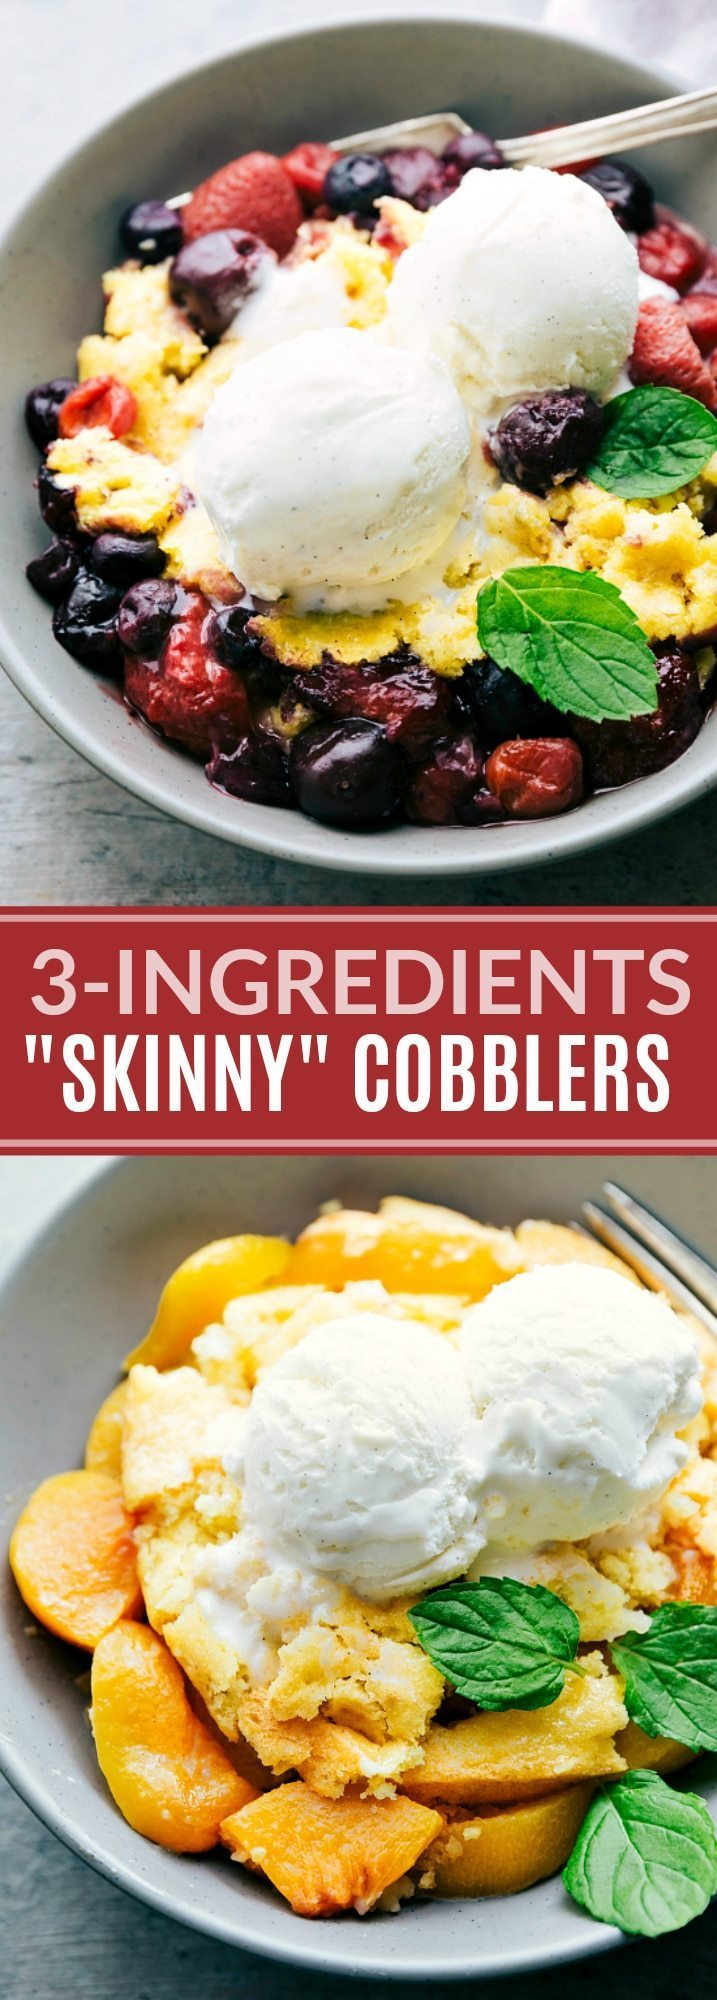 3-ingredients SKINNY FRUIT COBBLERS!! Lower calorie cobblers (berry and peach) that make a delicious and lighter summer treat! The peach cobbler requires only THREE ingredients (berry cobbler needs only FIVE ingredients). via chelseasmessyapron.com